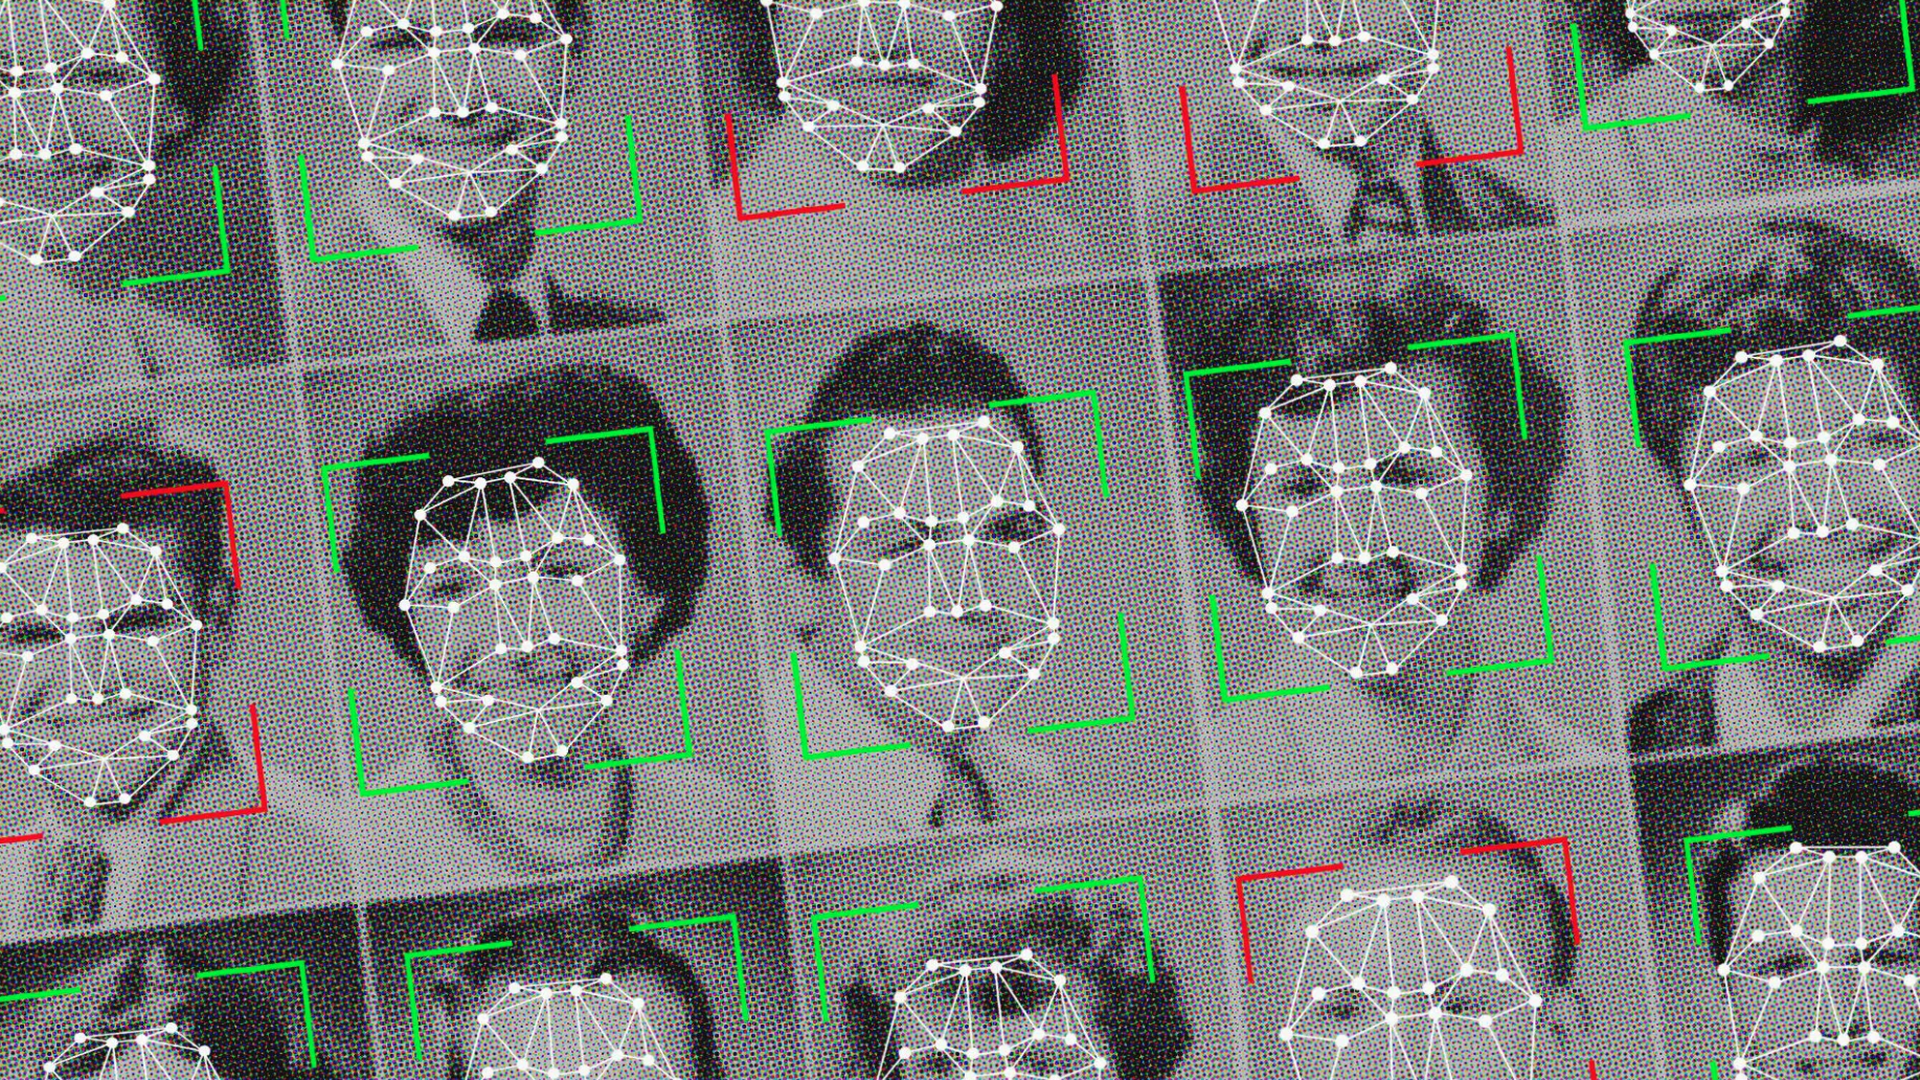 Leaked documents show Chinese businesses are shaping UN facial recognition standards